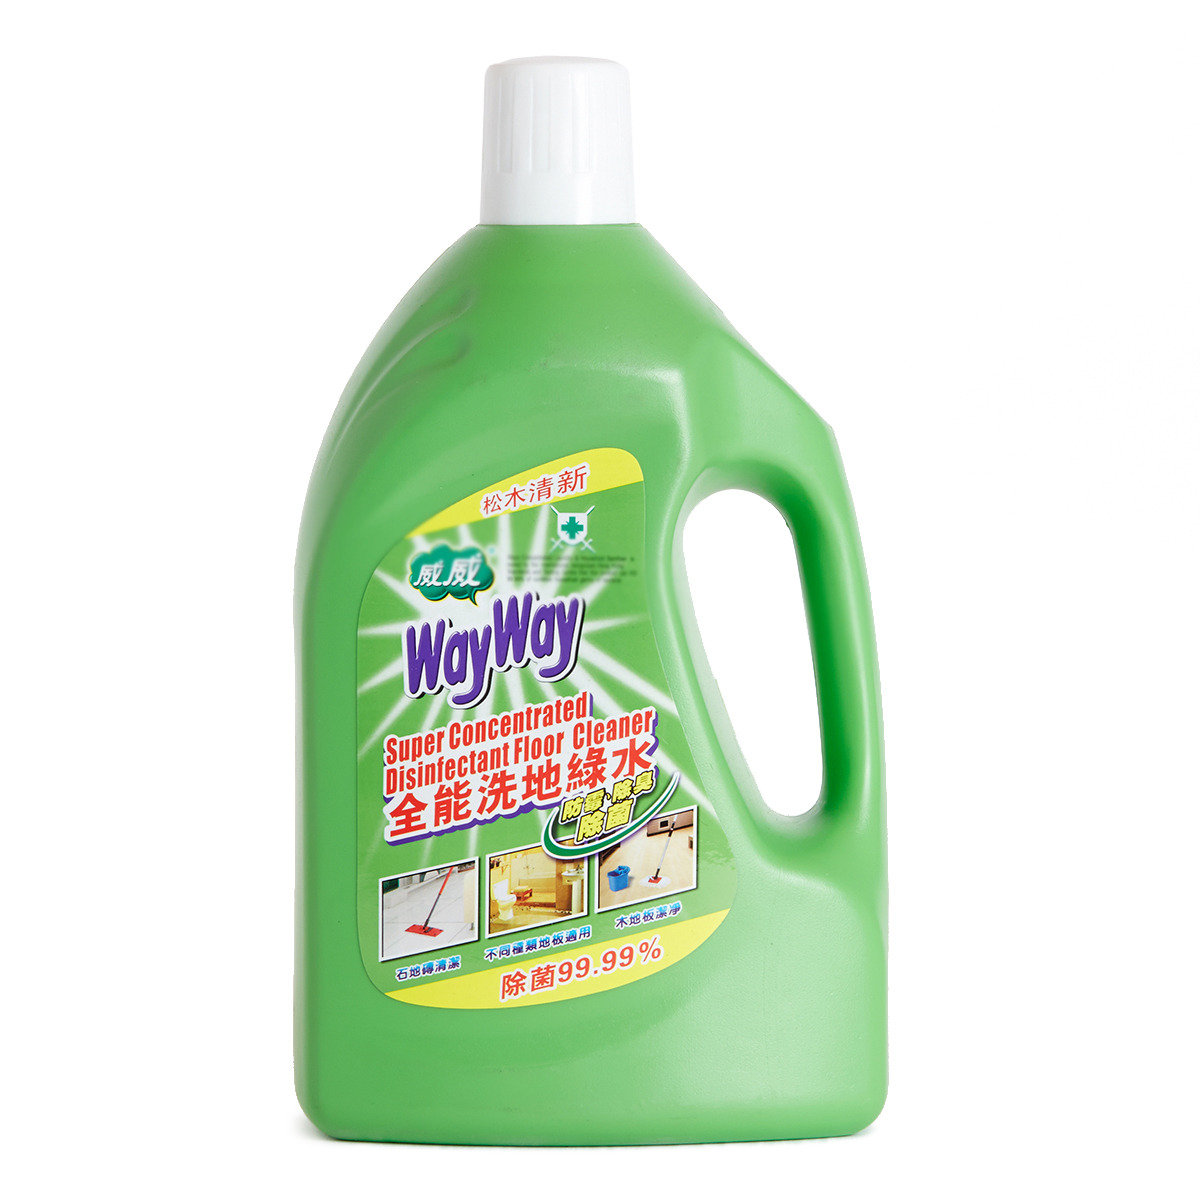 Super Concentrated Disinfectant Floor Cleaner